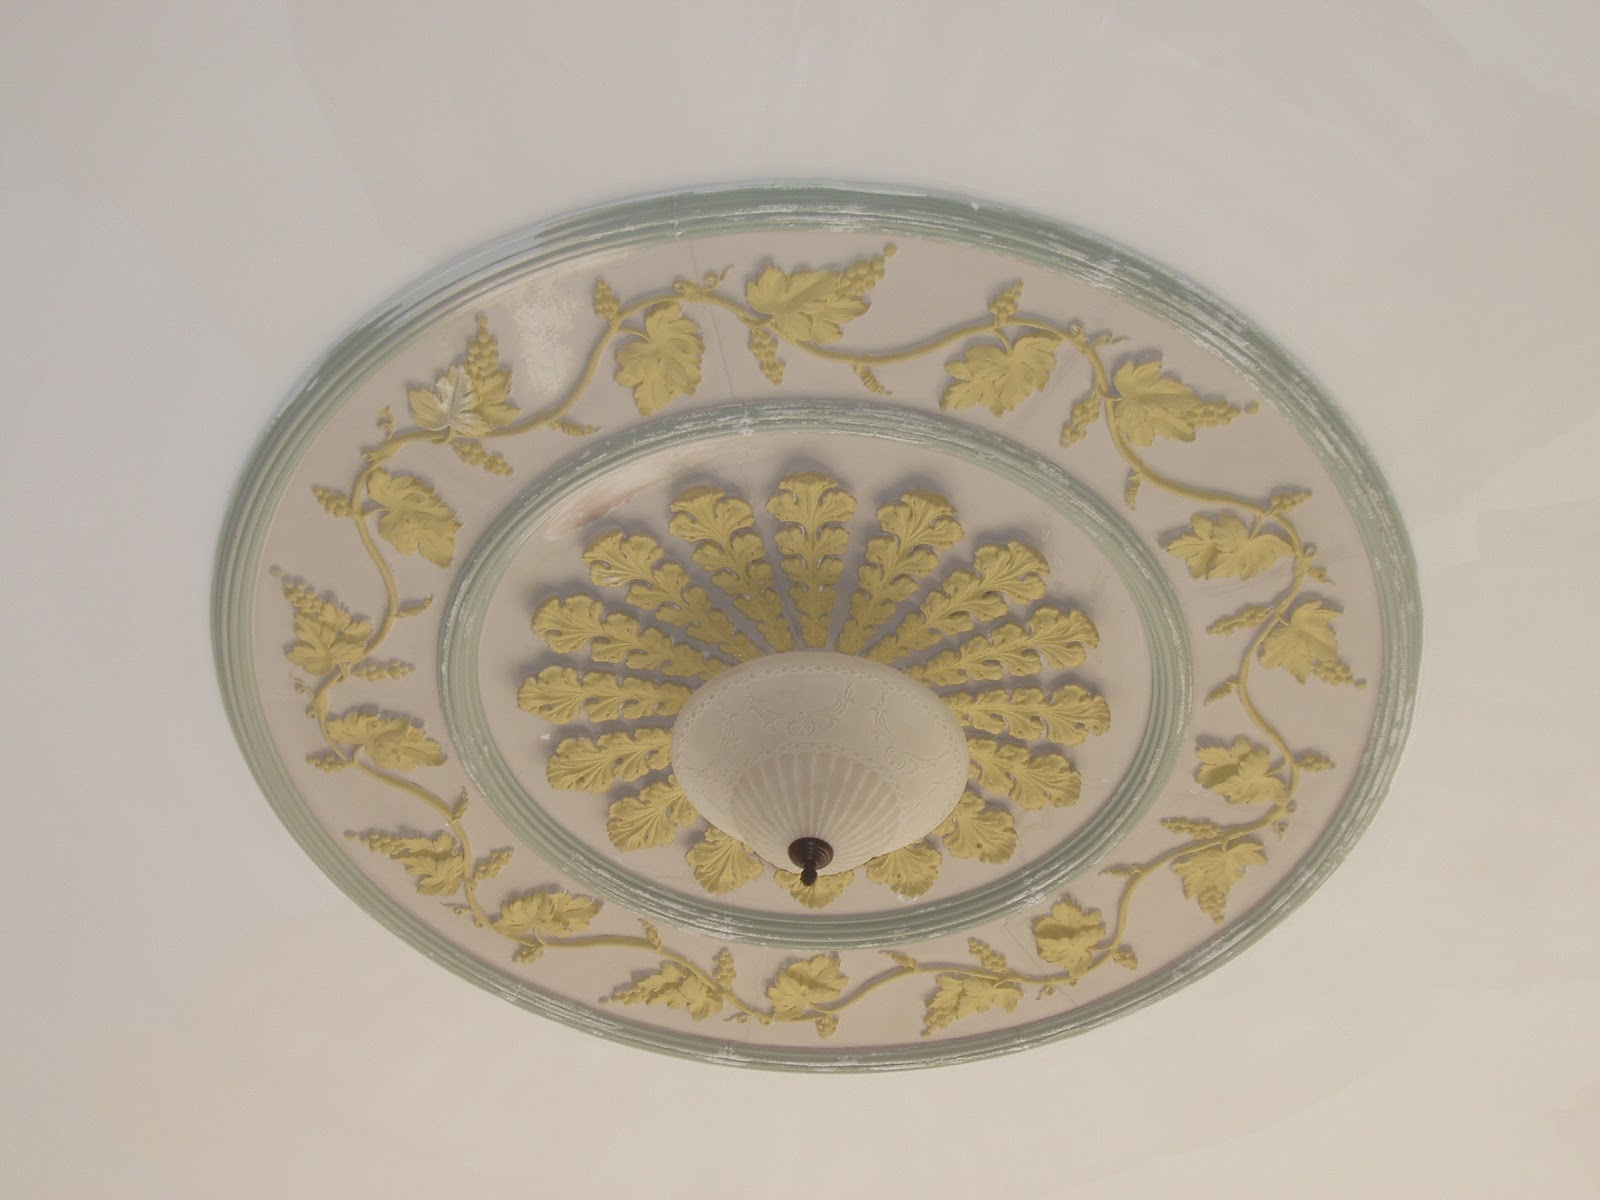 ... ceiling decoration and a plaster cornice imported from France